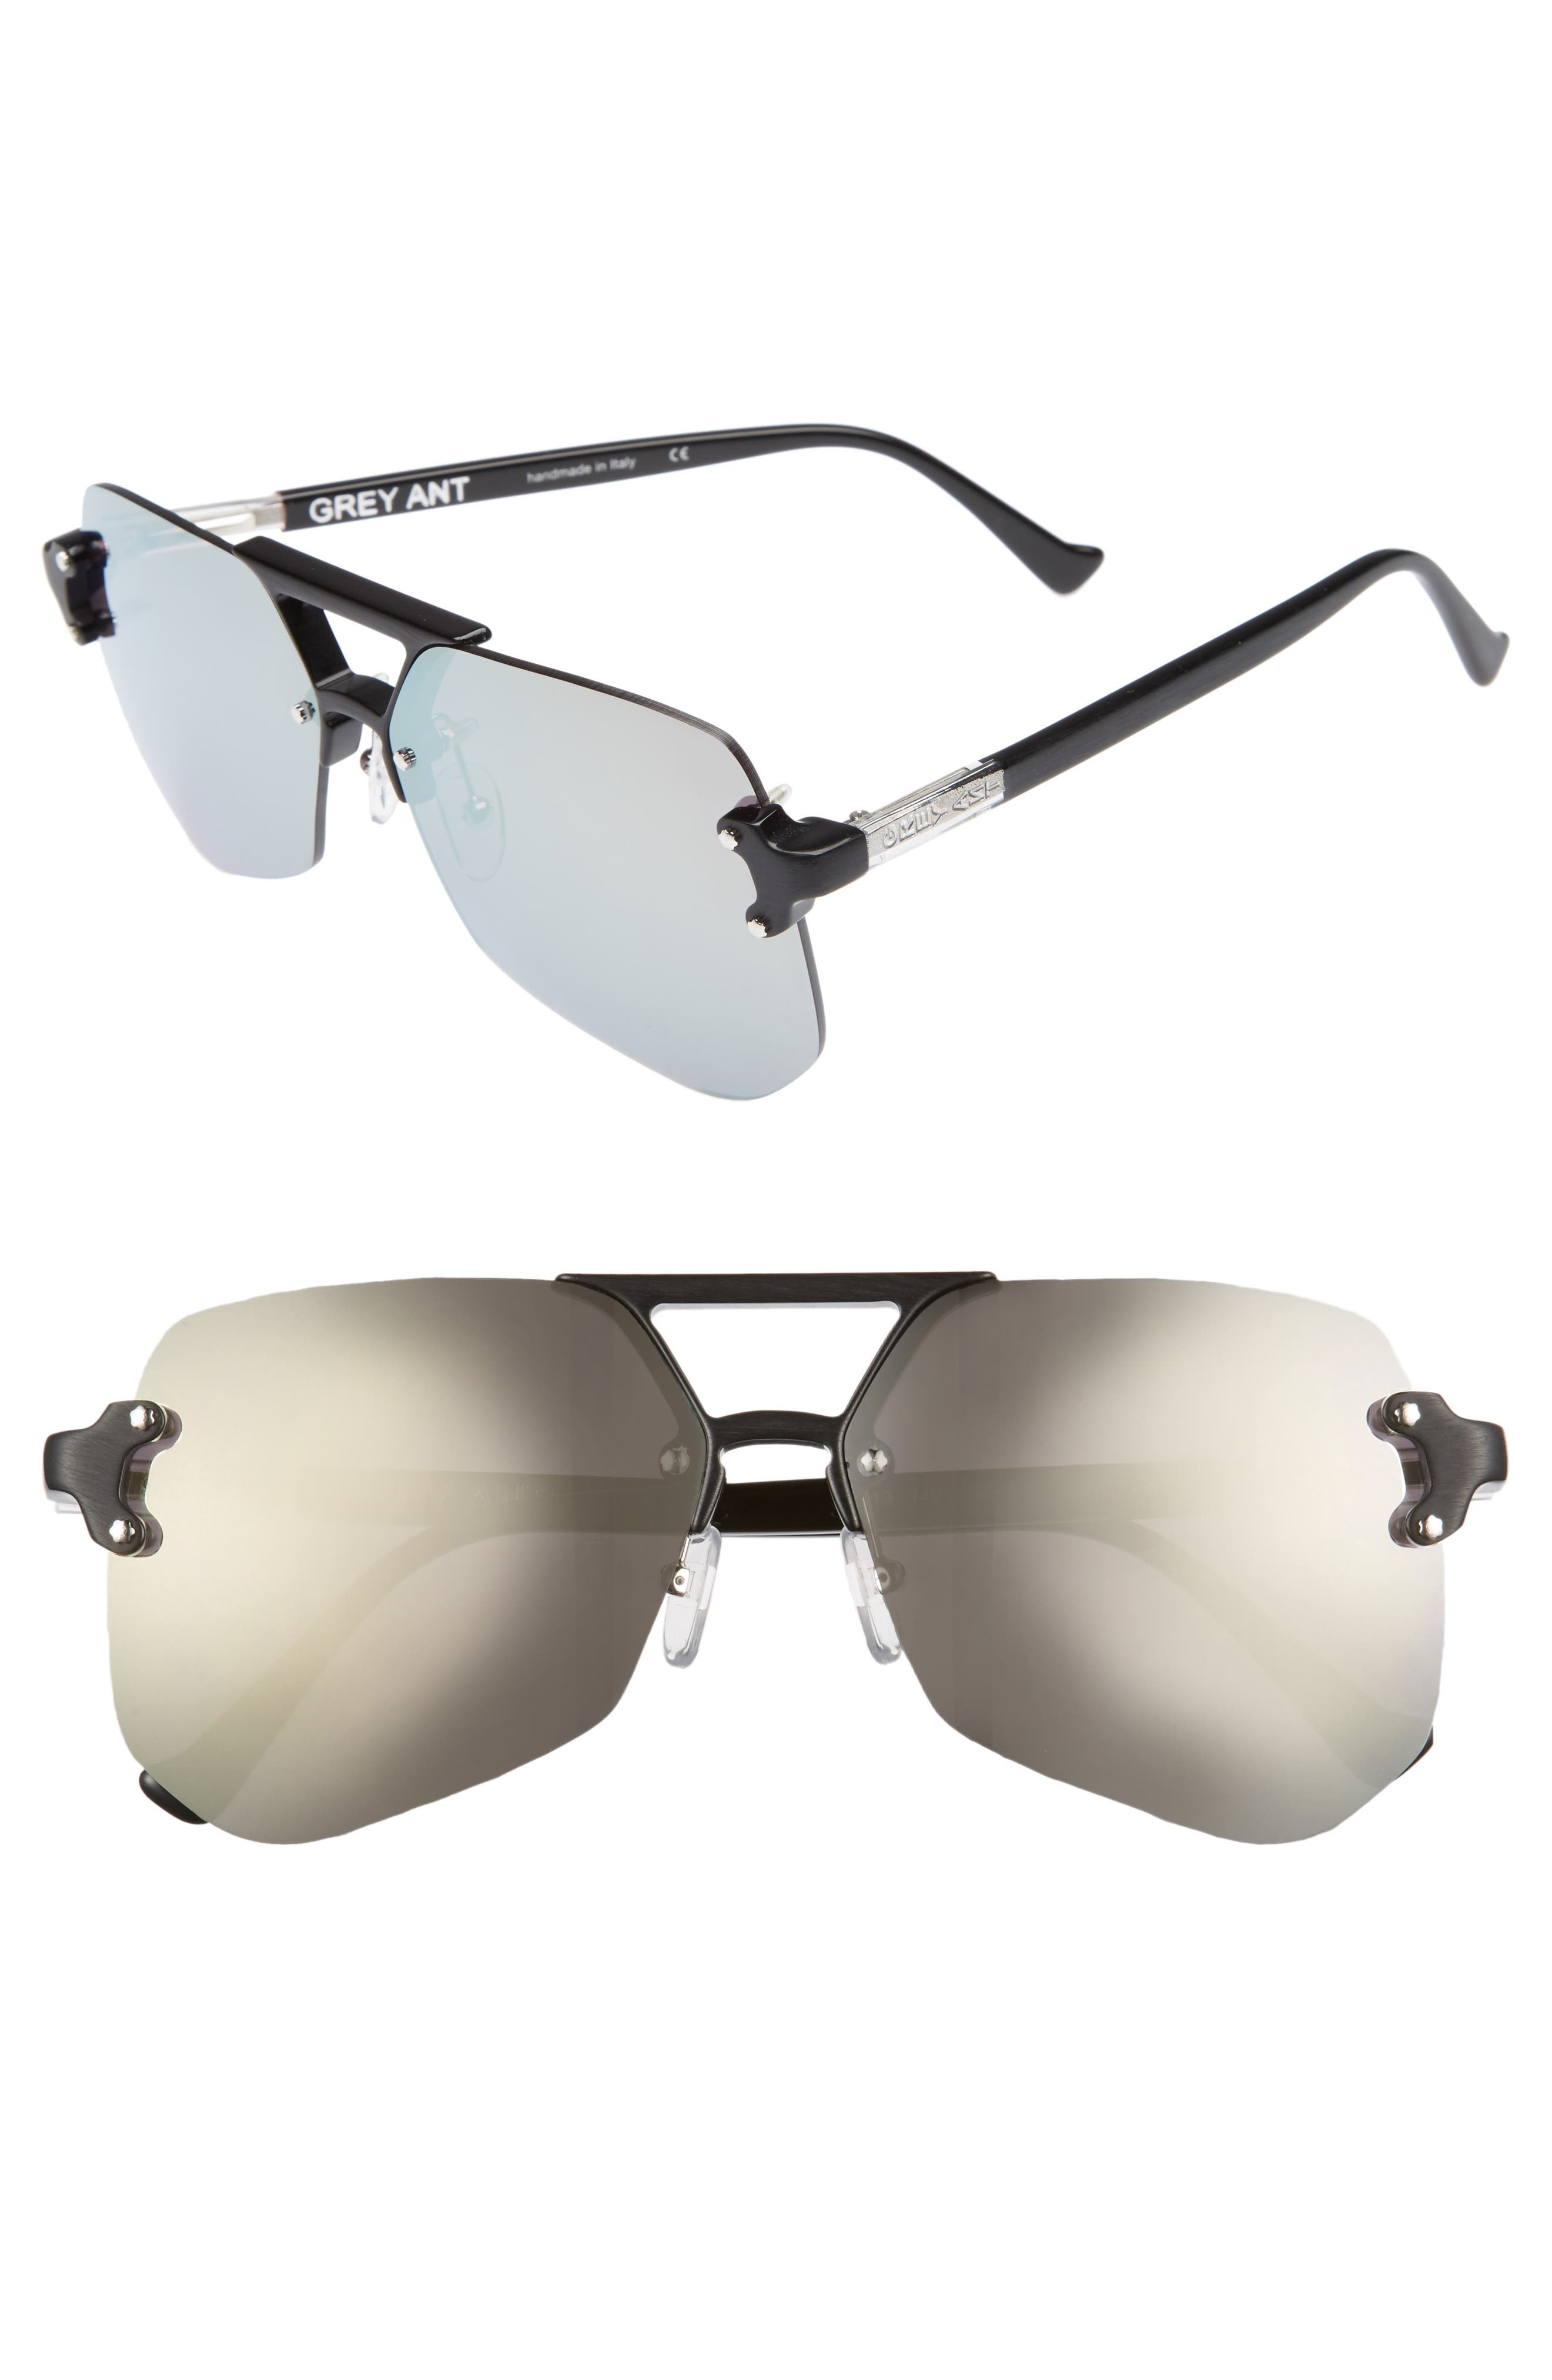 Main Image - Grey Ant Yesway 60mm Sunglasses